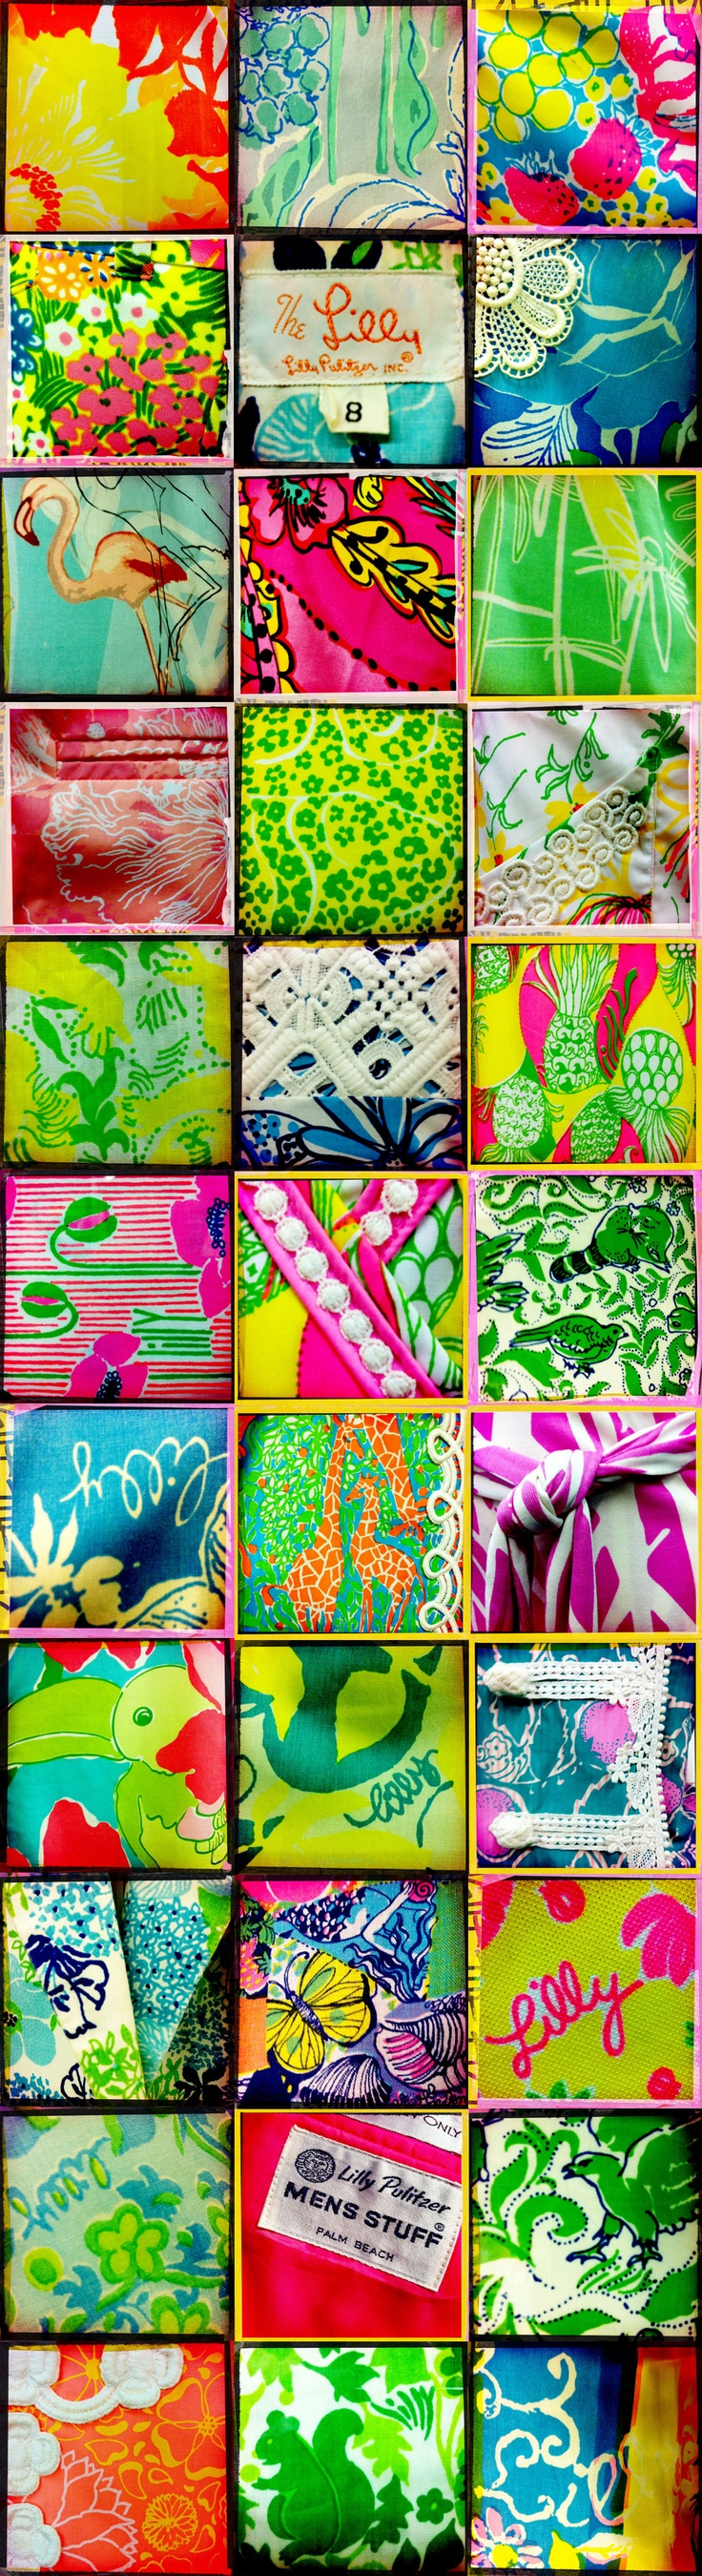 These are some really great Vintage Lilly Pulitzer patterns! #vintage #lilly #rip